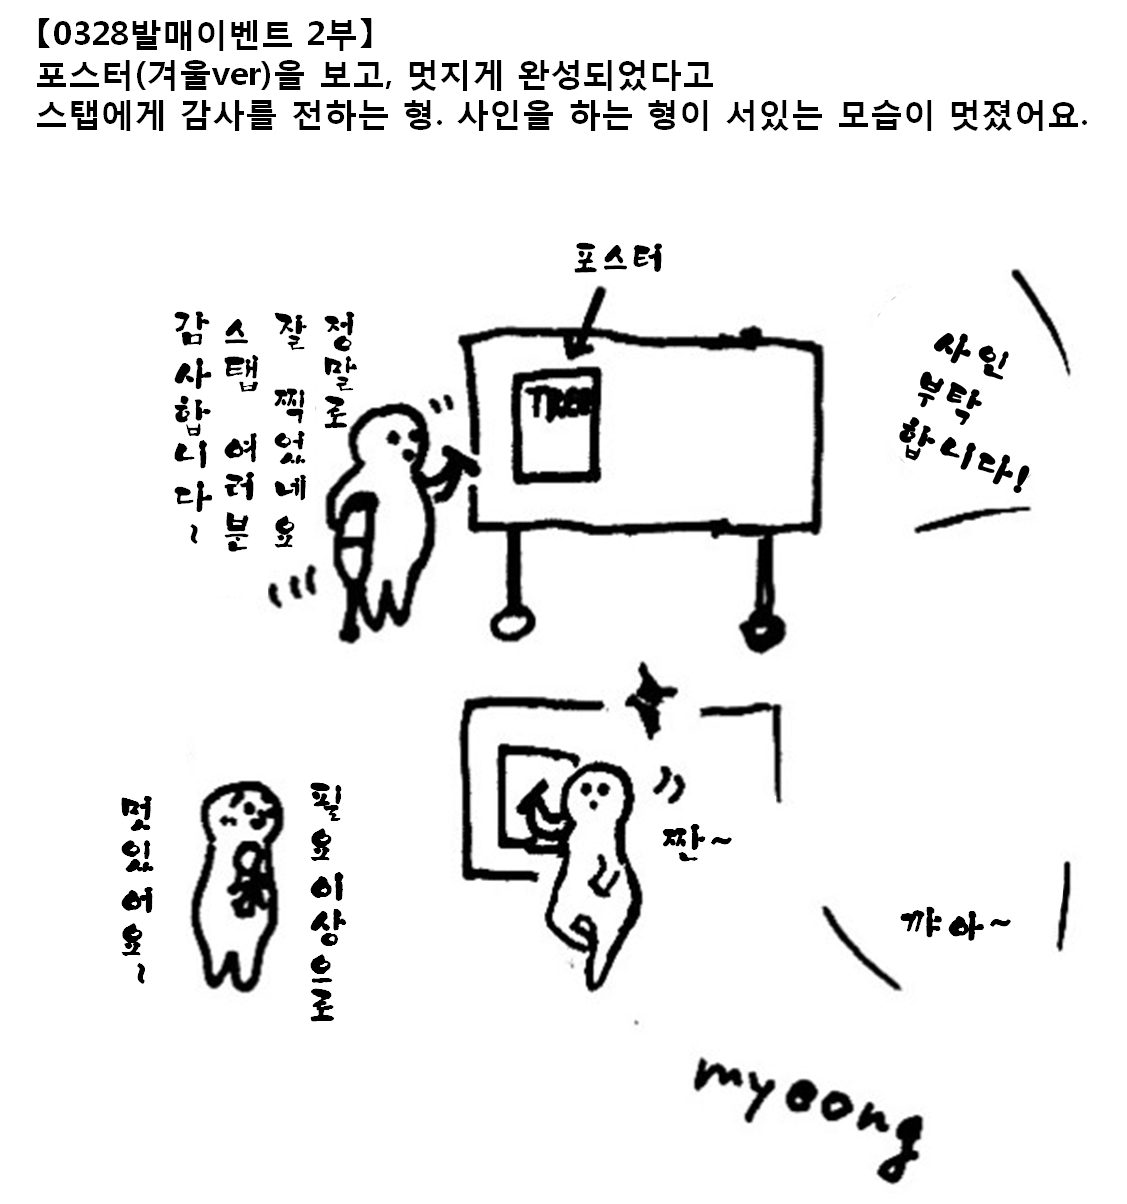 m그림1.png